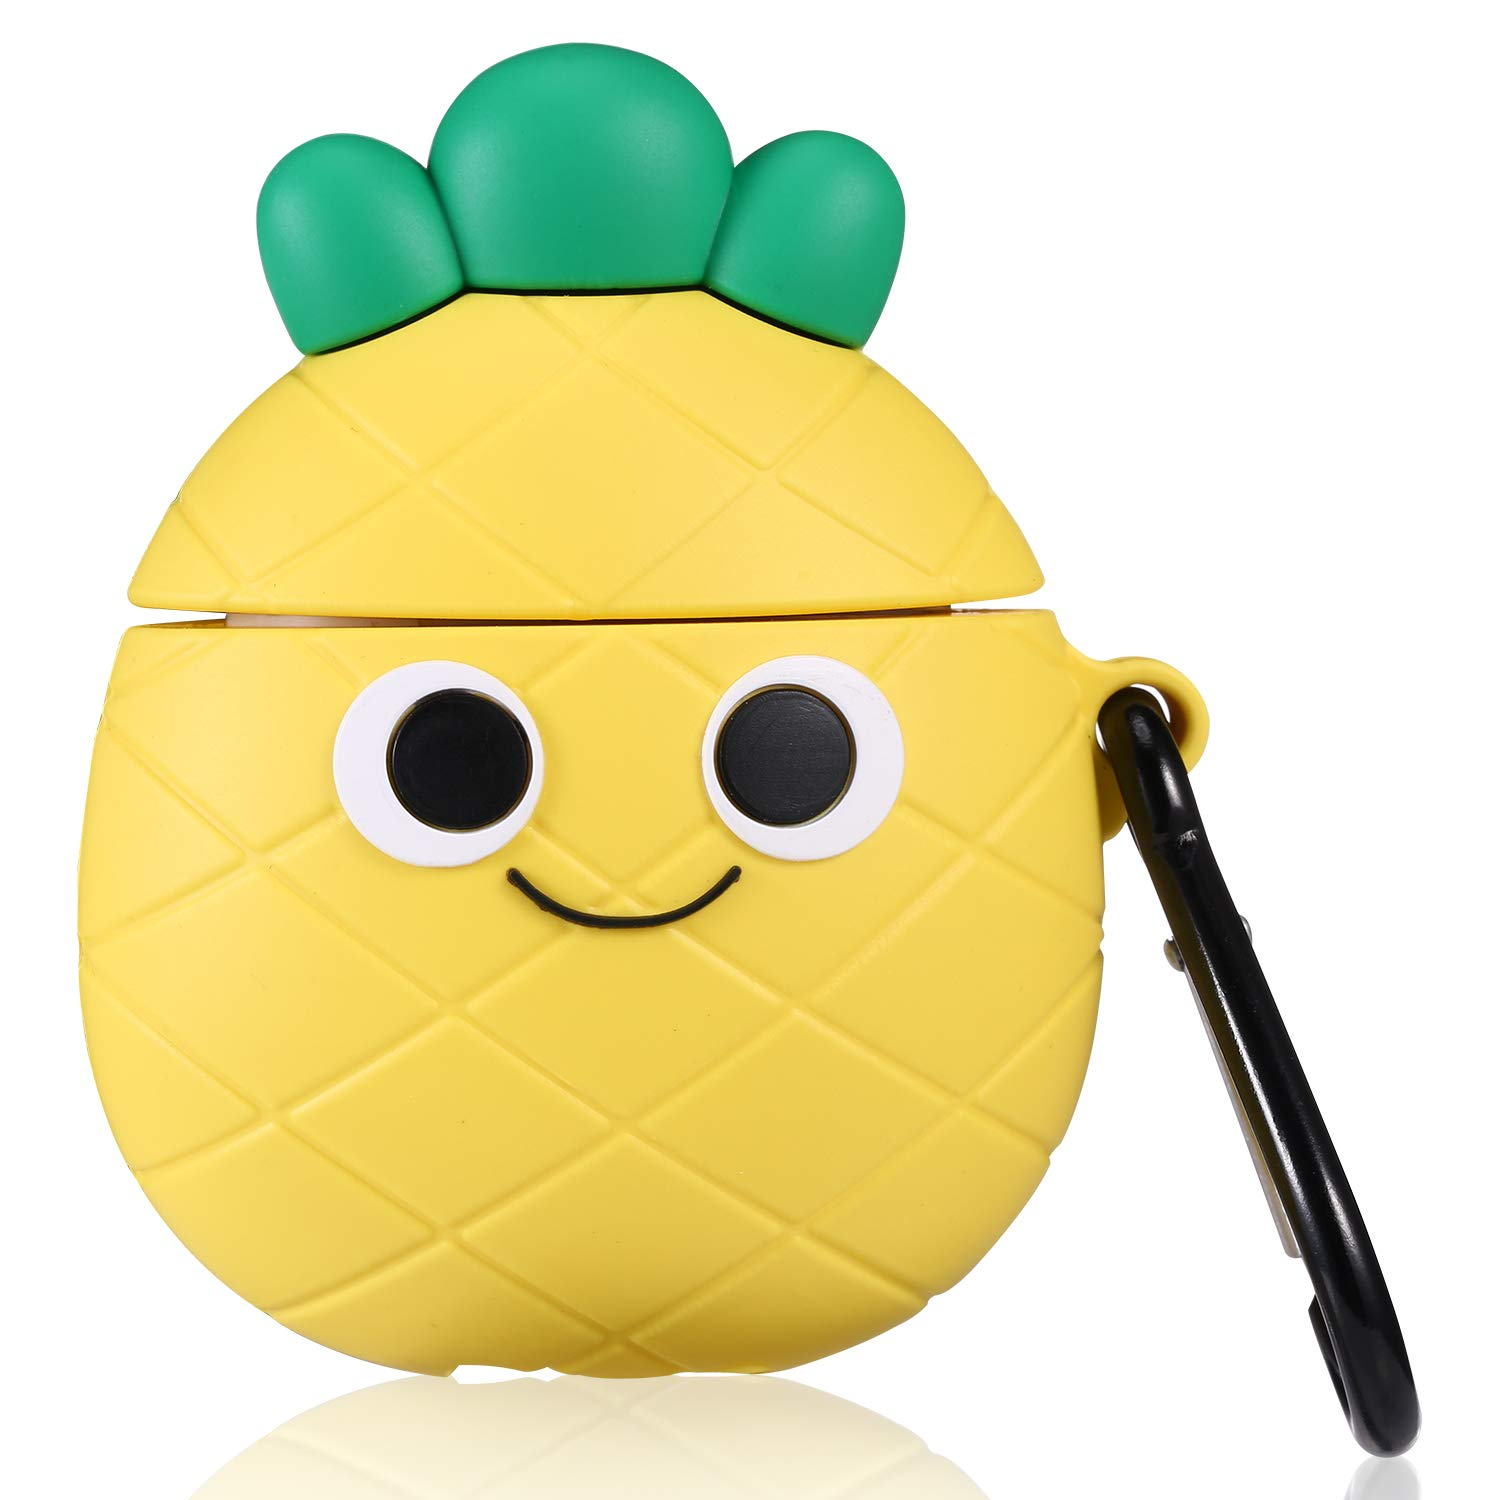 Lupct Q Pineapple Compatible with Airpods 1/2 Case Soft Silicone, Cute Cartoon 3D Cool Air pods Design Cover, Fun Kawaii Fruit Fashion Funny Cases for Kids Girls Teens Character Skin Keychain Airpod